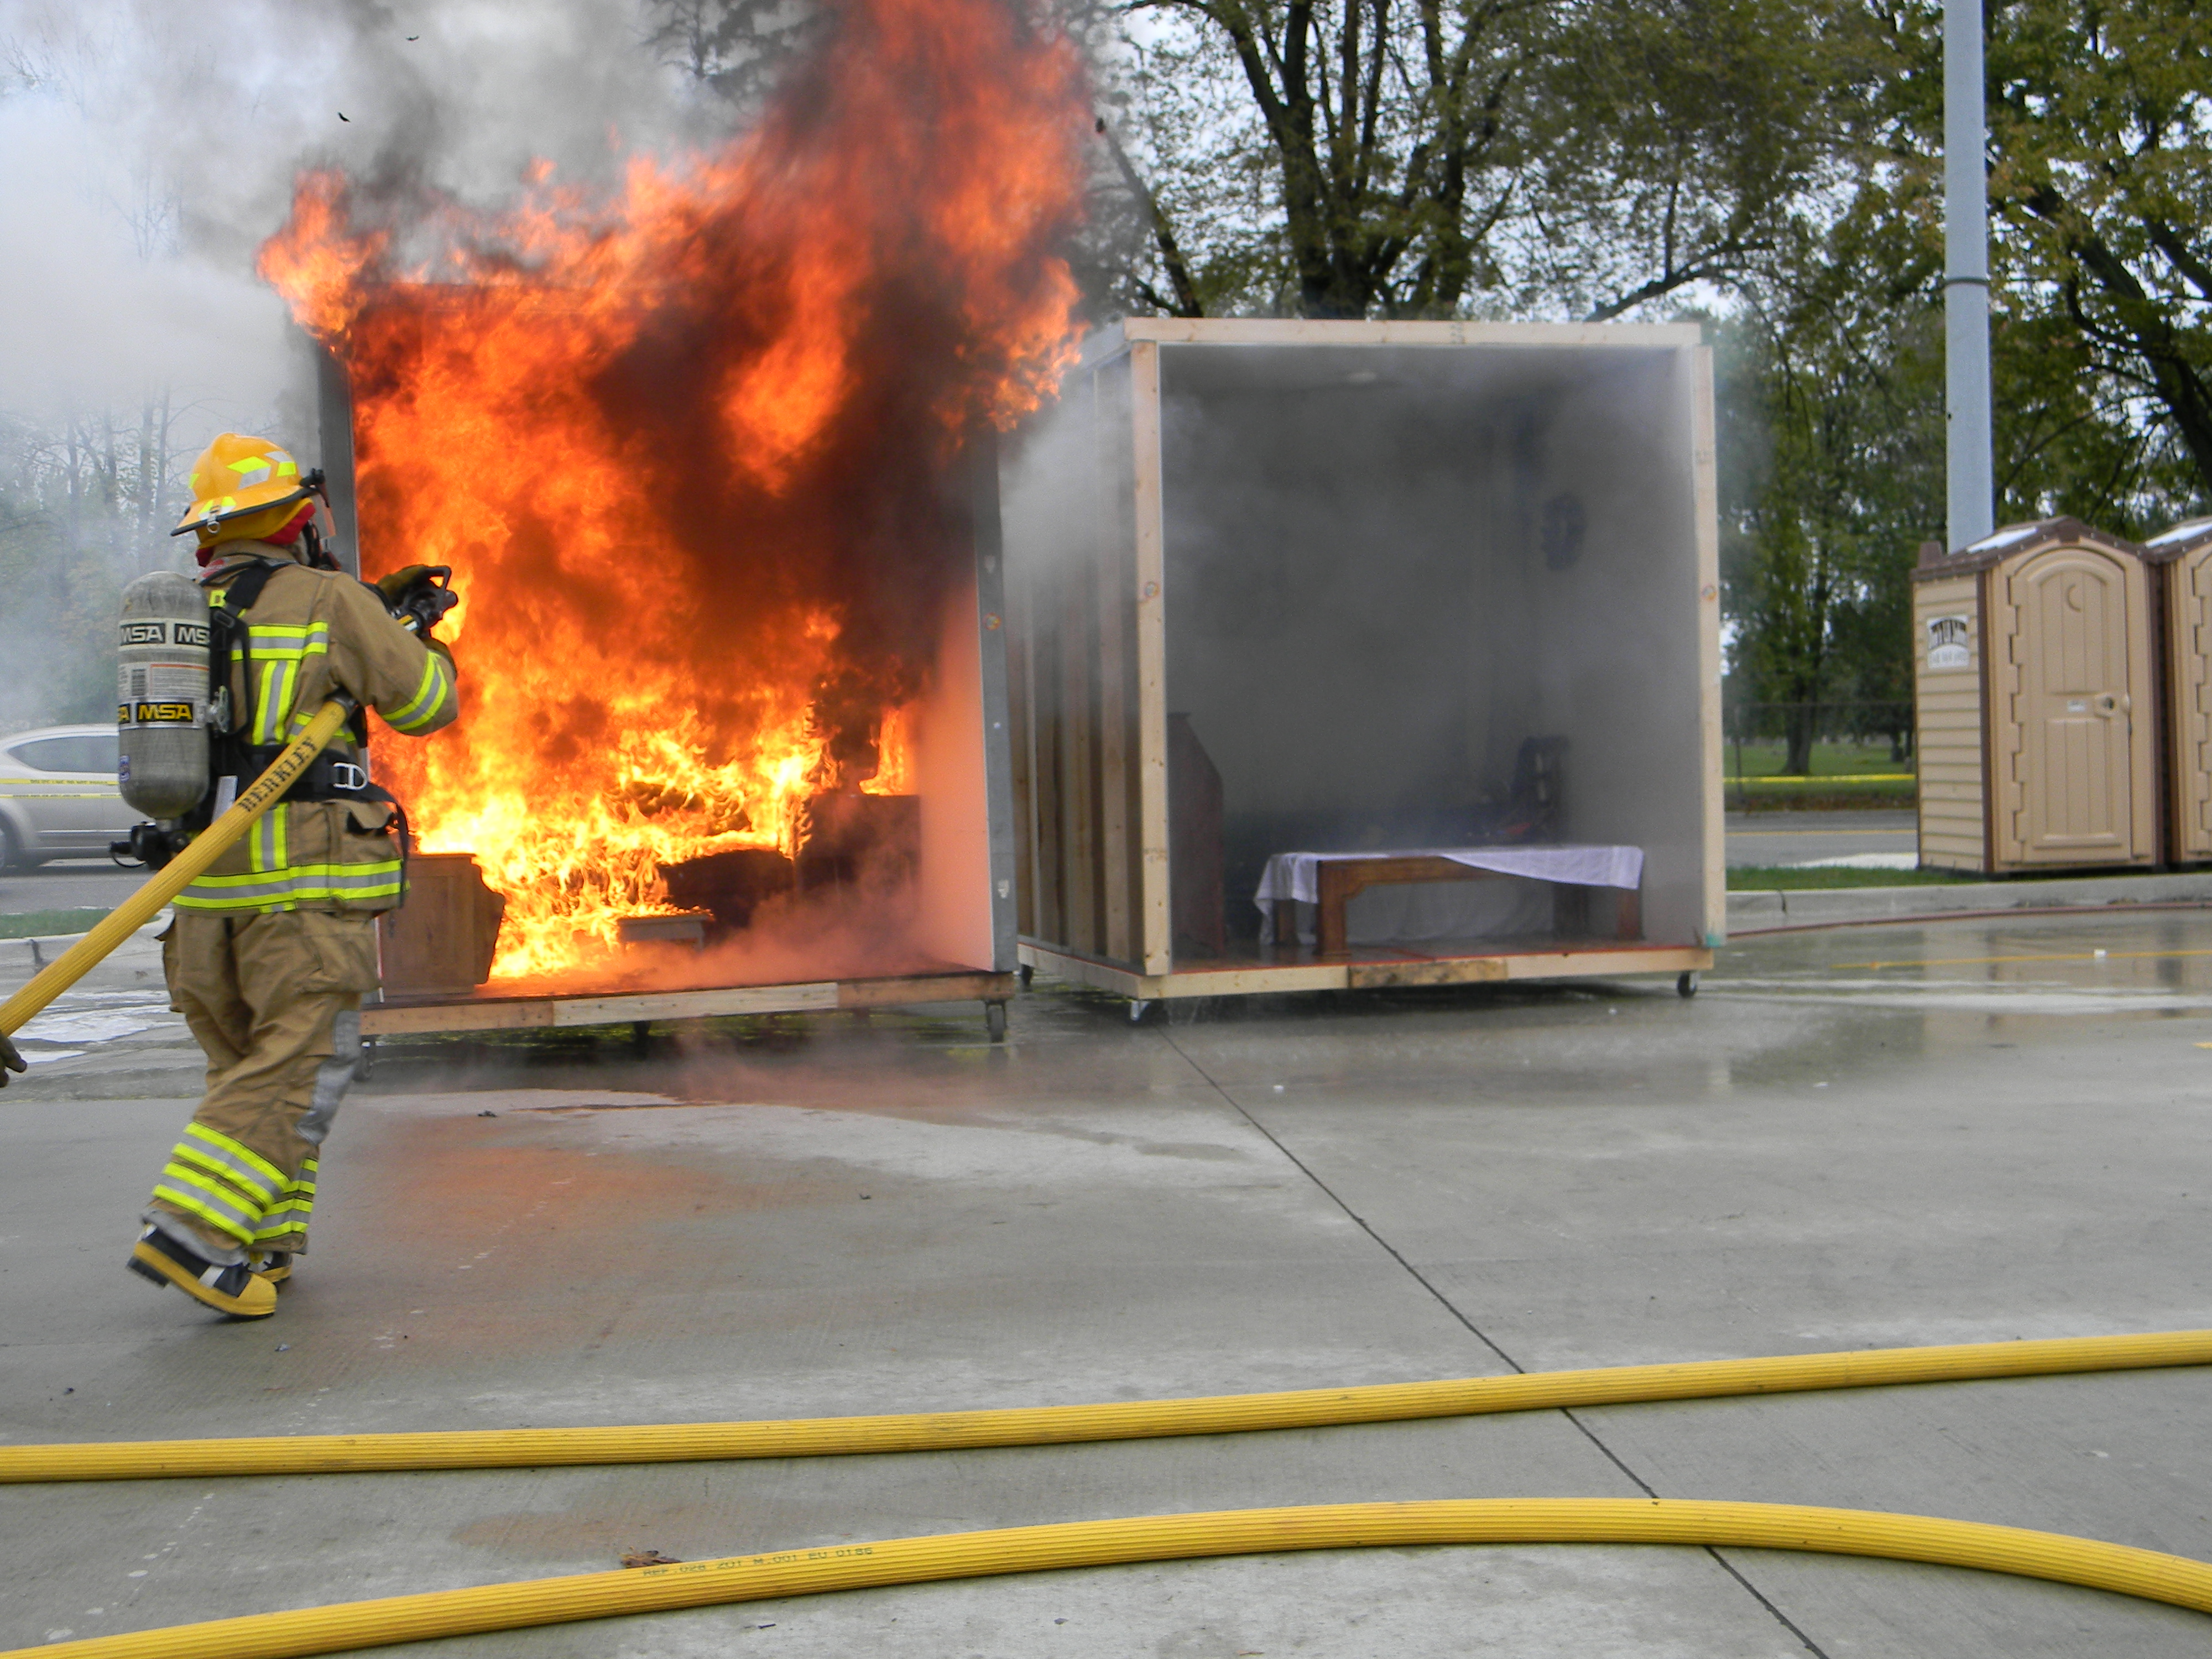 Fire Safety Open House